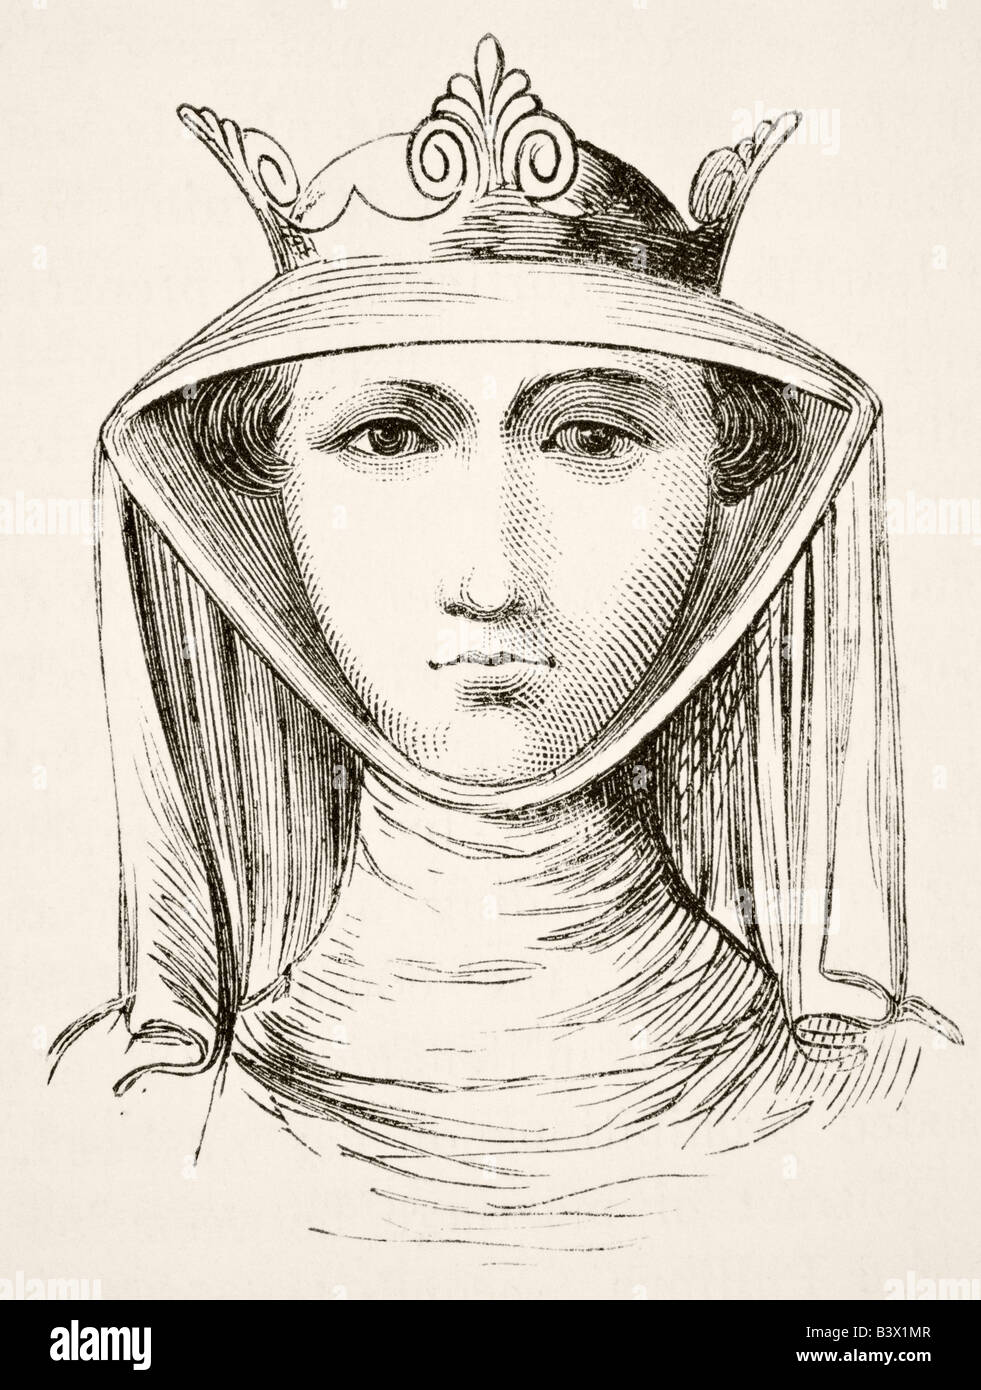 Isabella of France circa 1295 to 1358, known as the She Wolf of France. - Stock Image